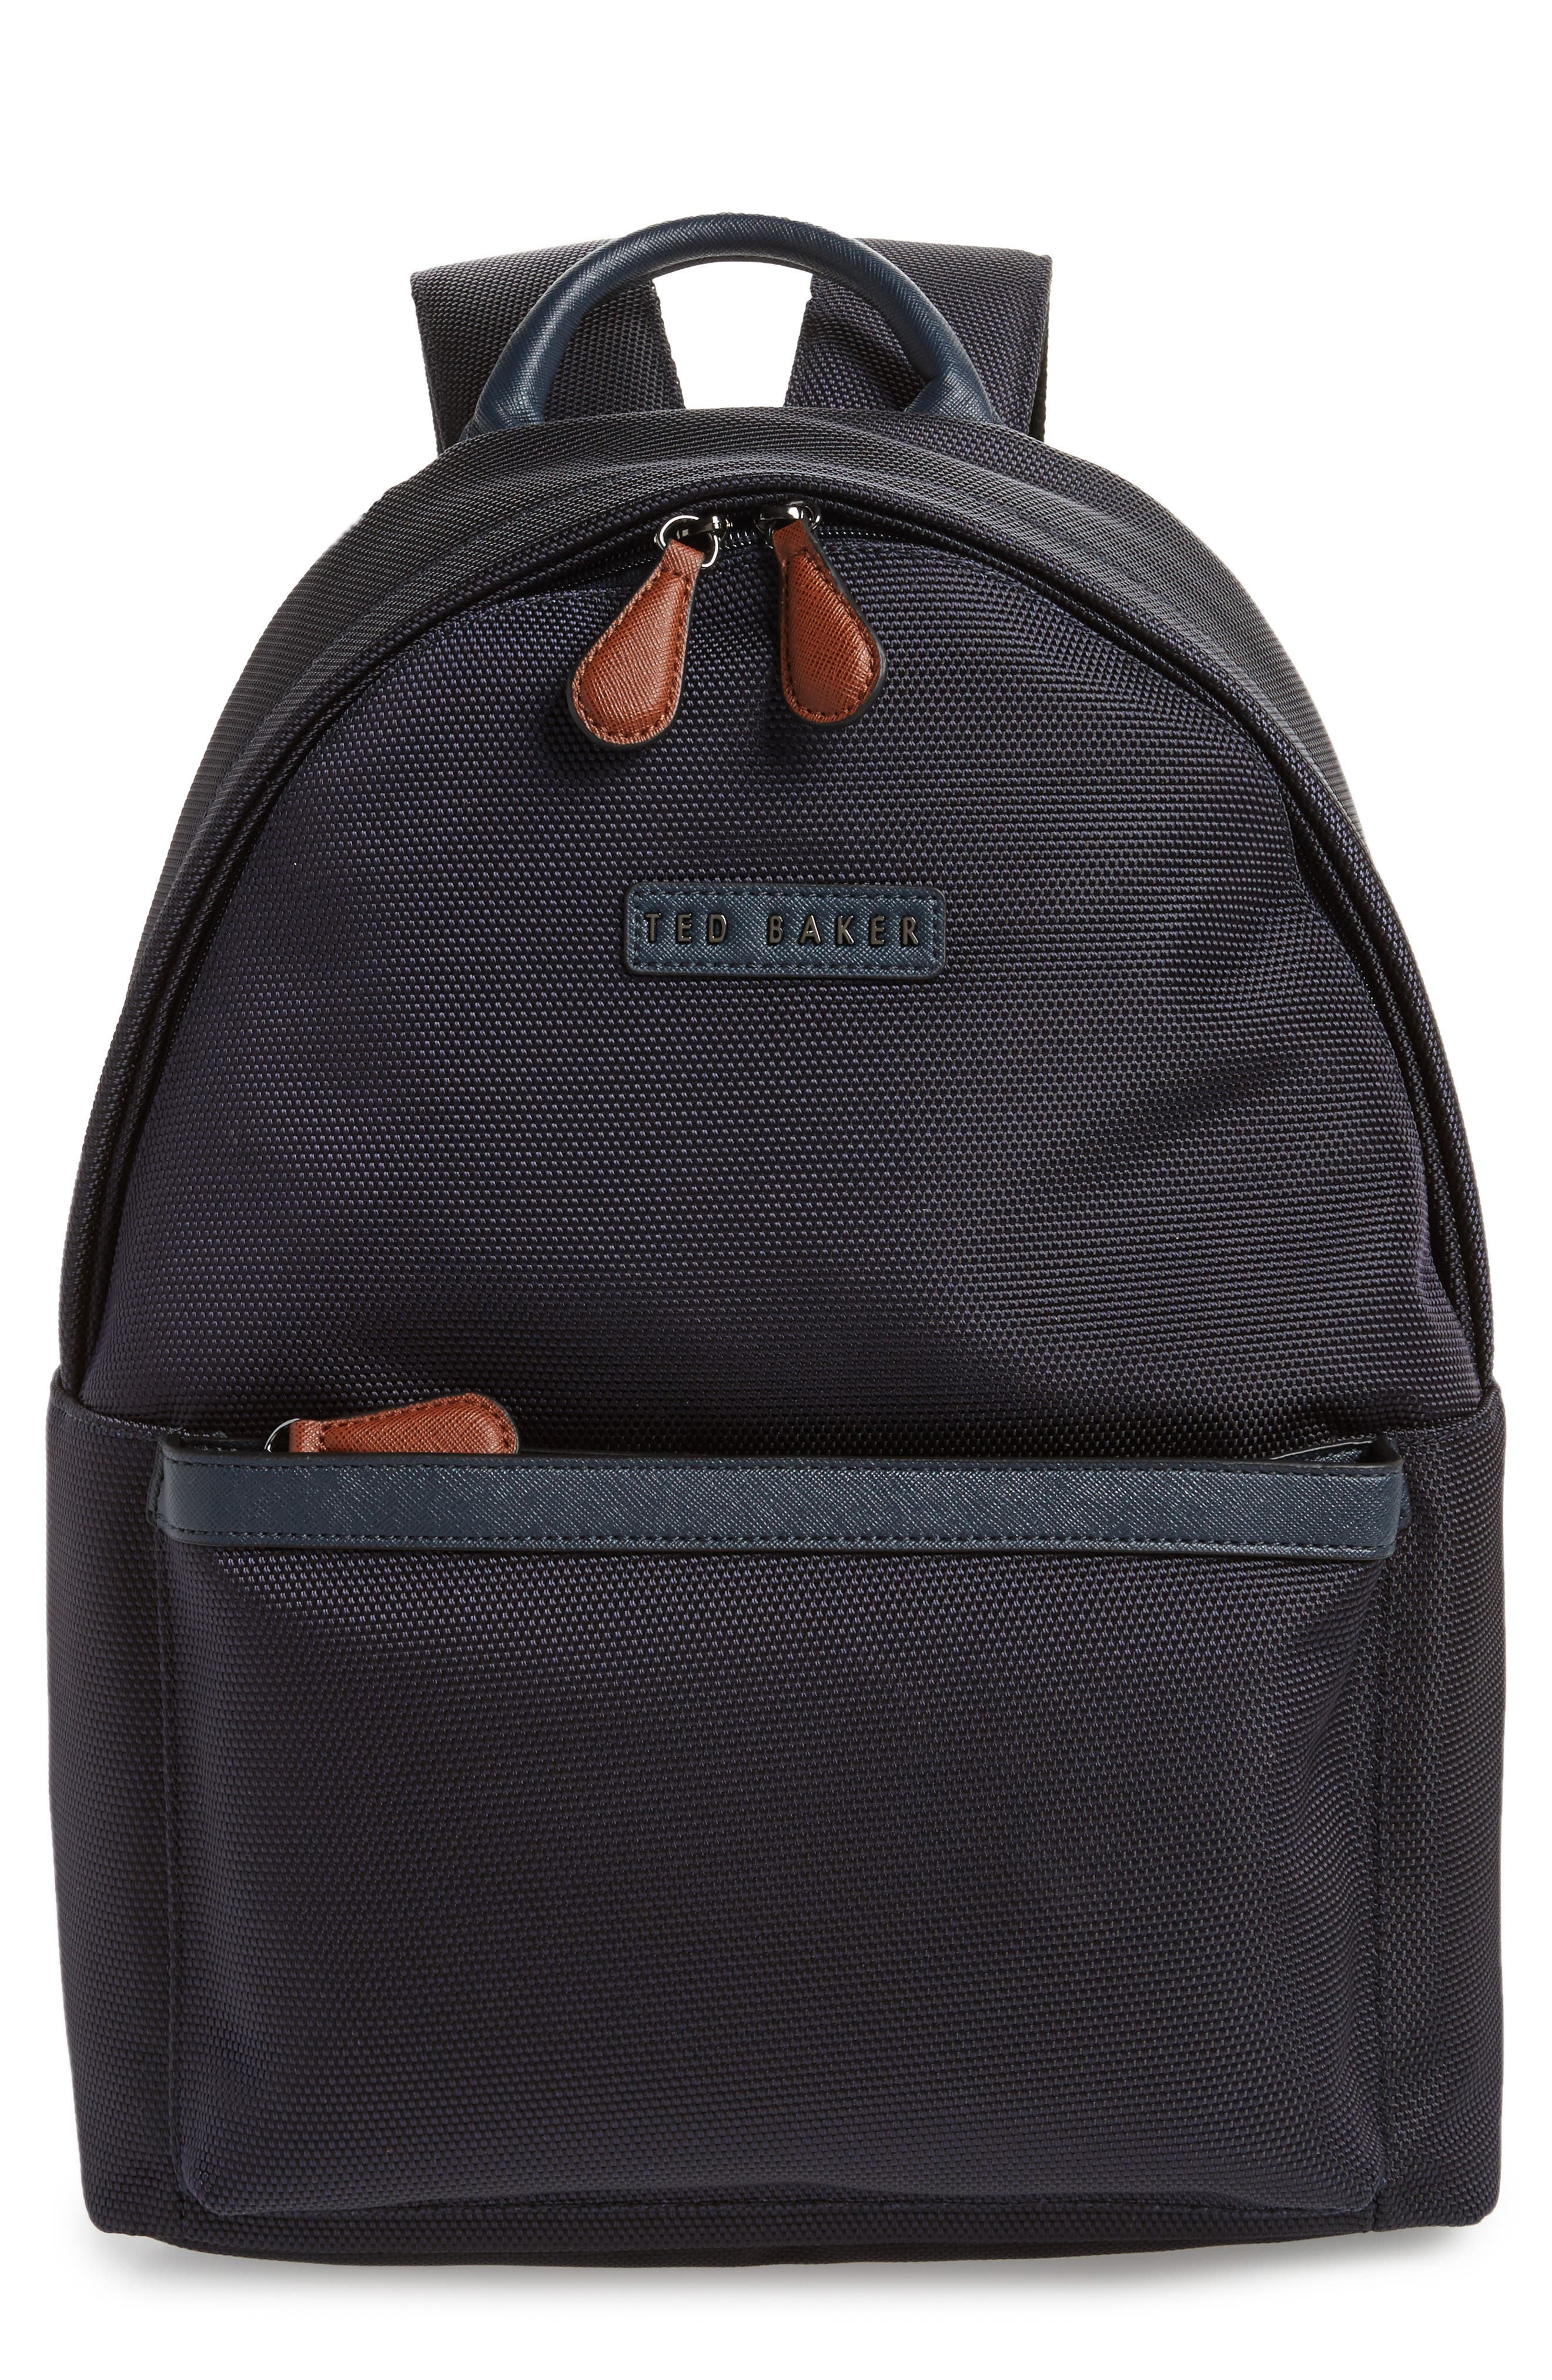 Brakes Backpack,                         Main,                         color,